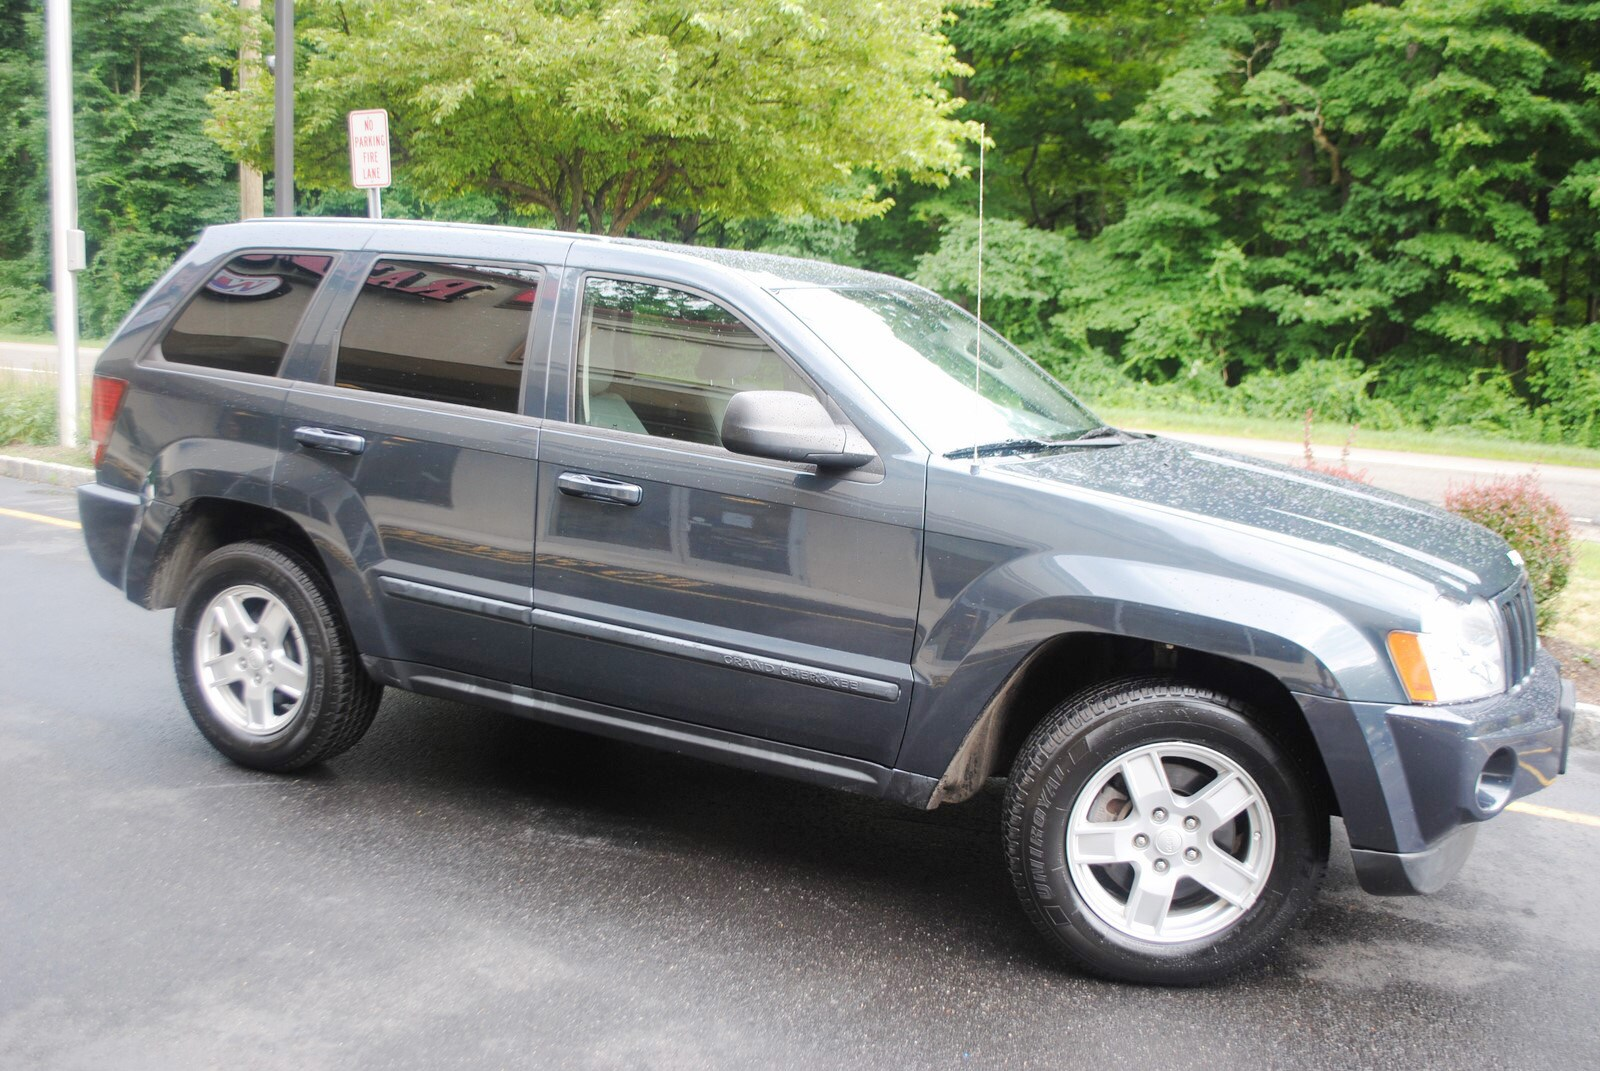 ... 2007 Jeep Grand Cherokee Laredo 3.7 SUV ...